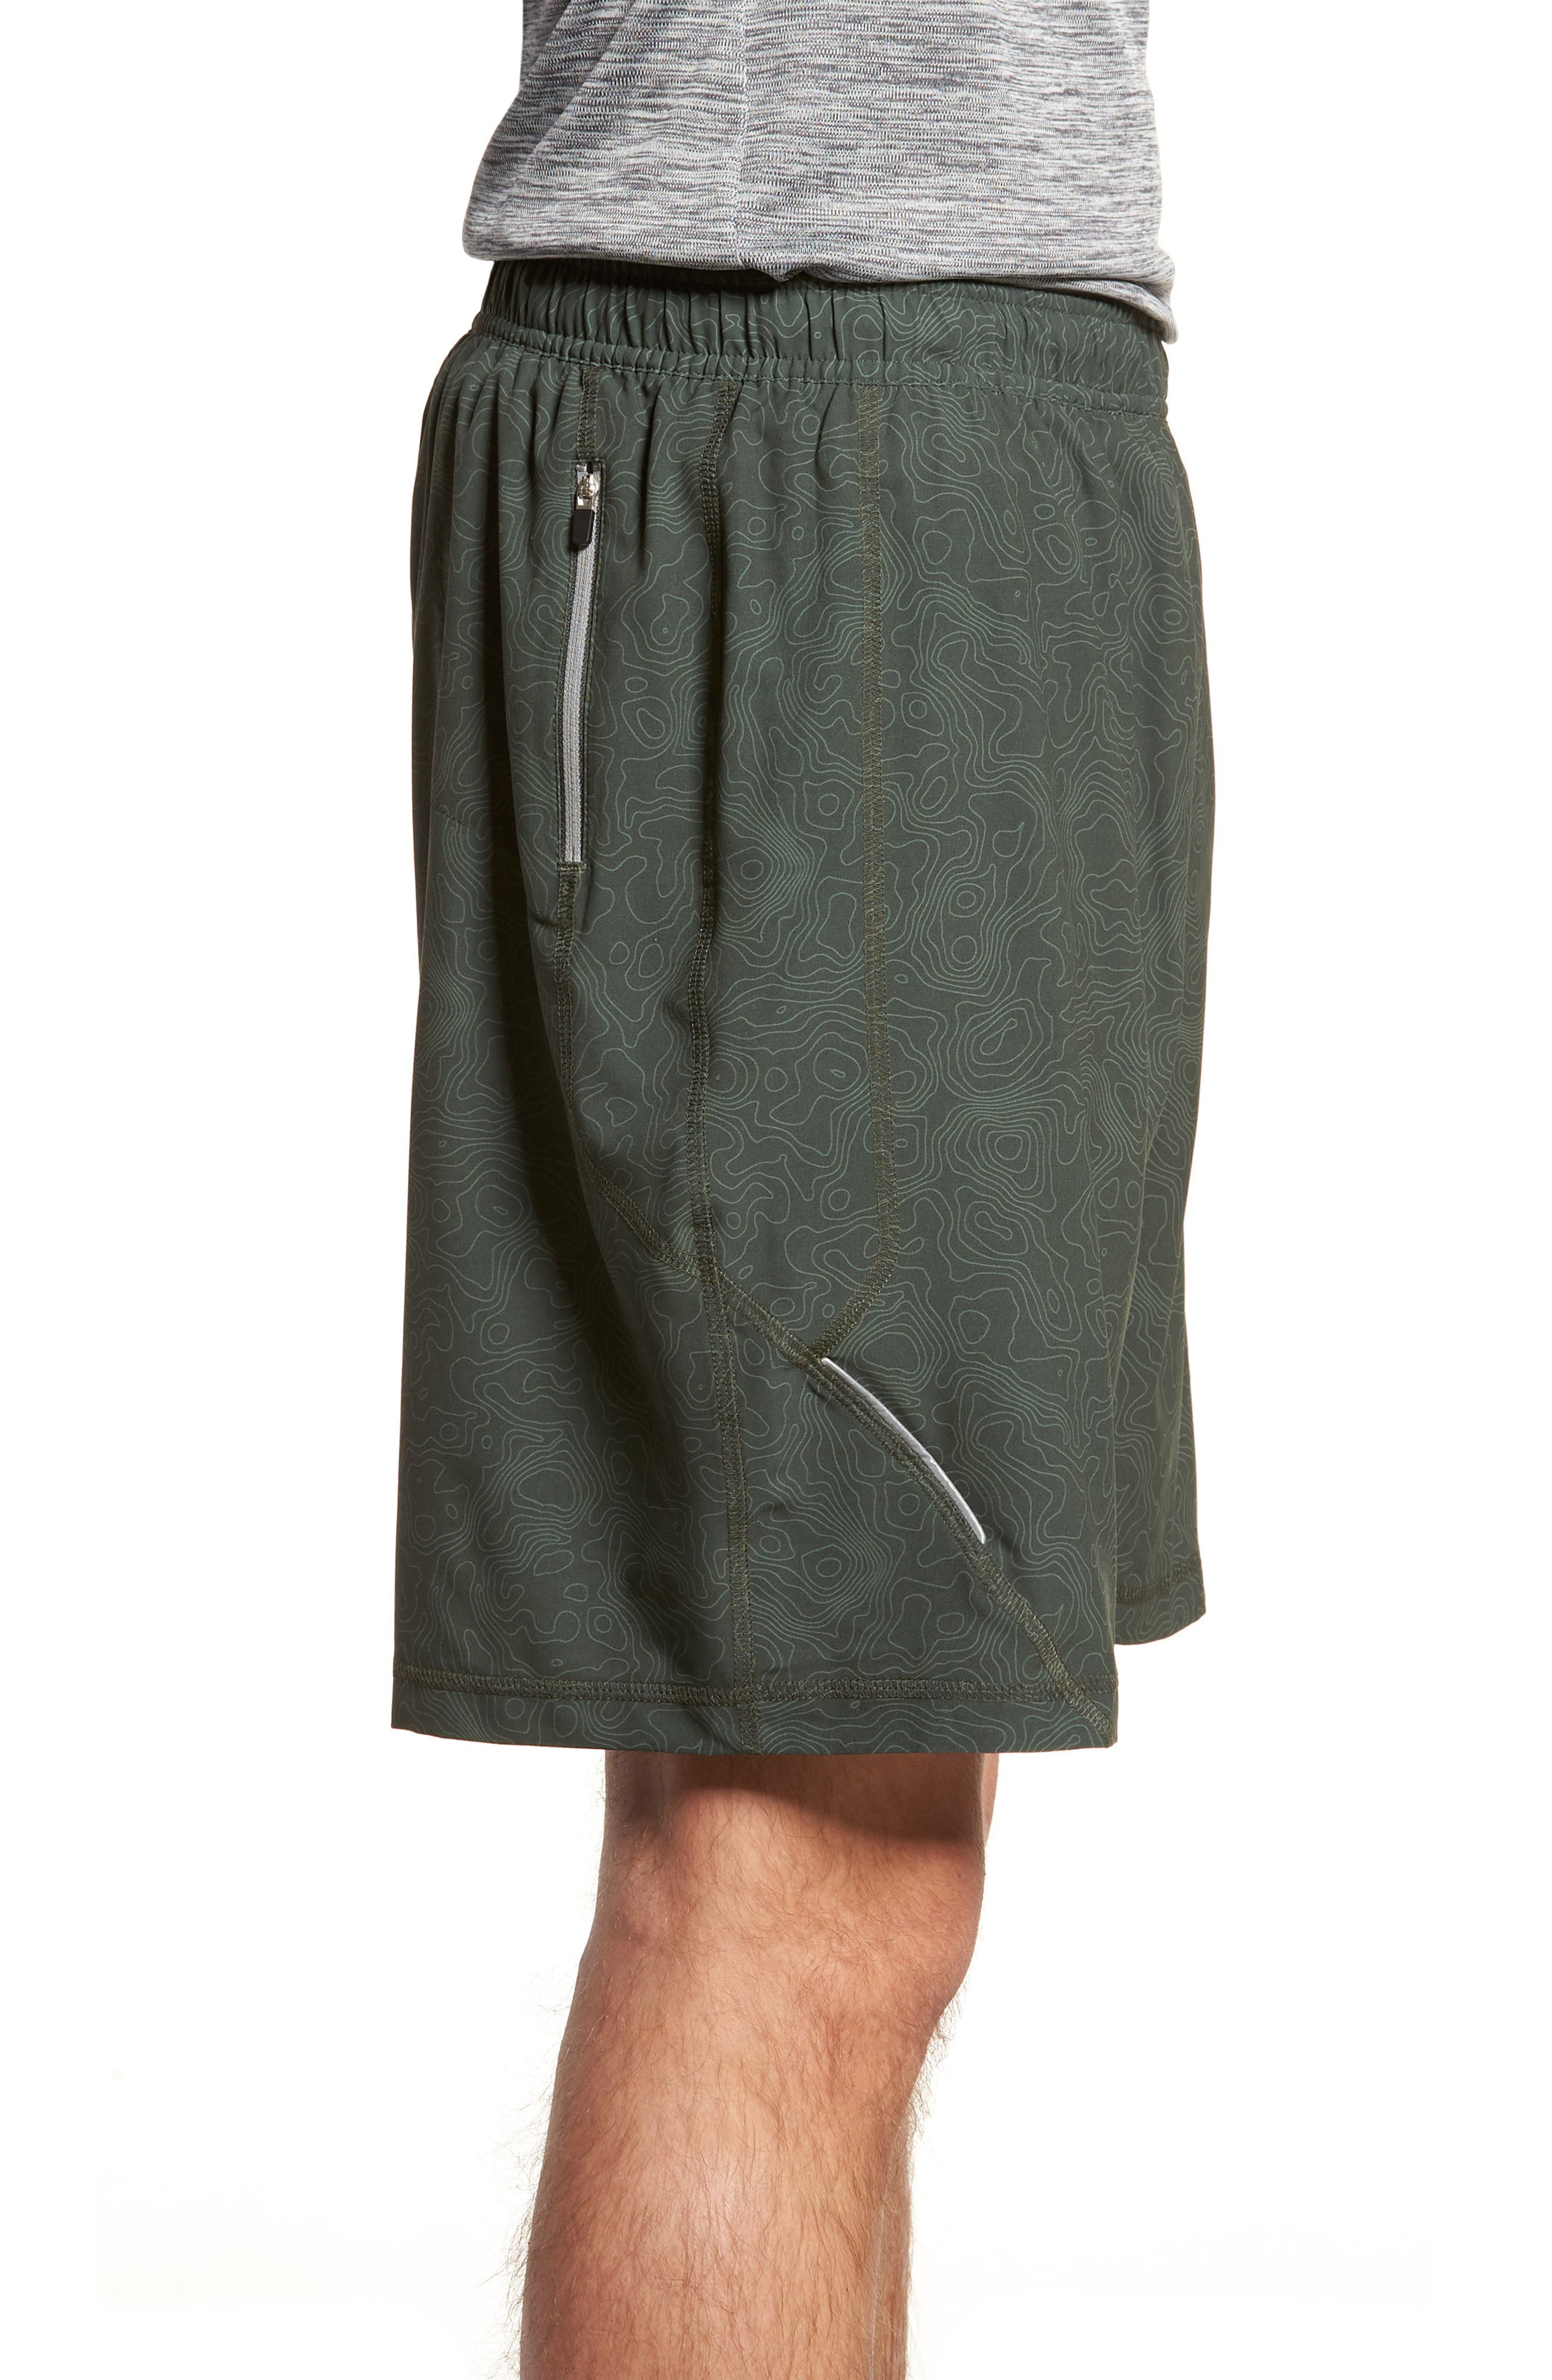 Propulsion Athletic Shorts,                             Alternate thumbnail 3, color,                             Topography